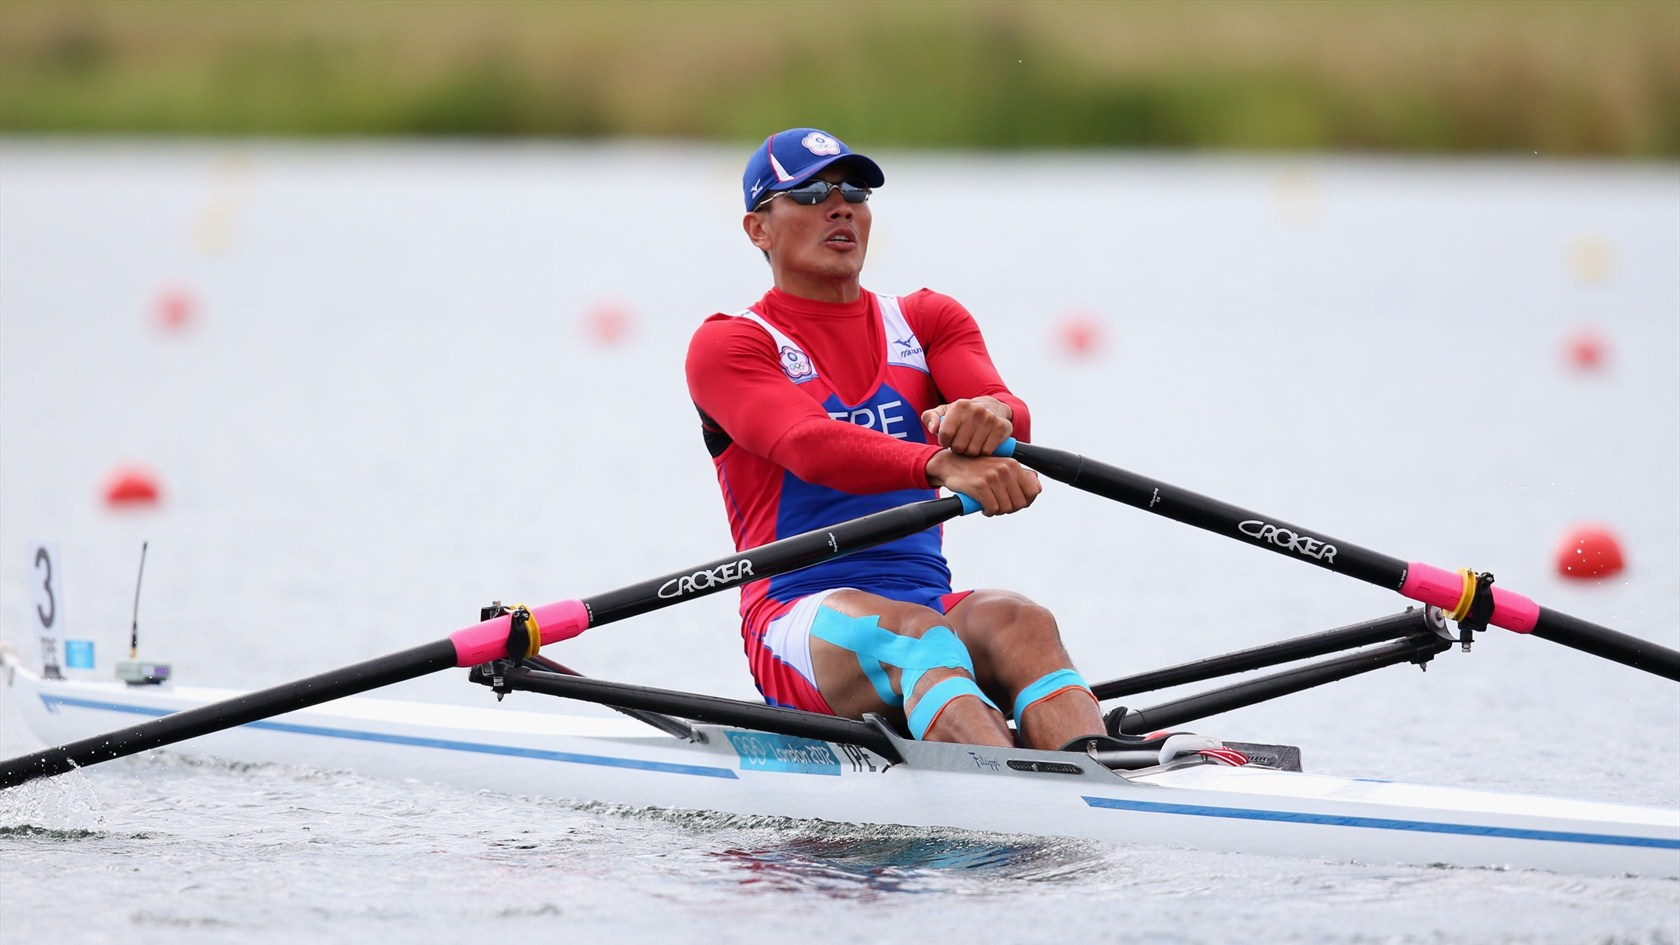 Ming-Hui Wang of Taiwan competing in Men's Single Scull